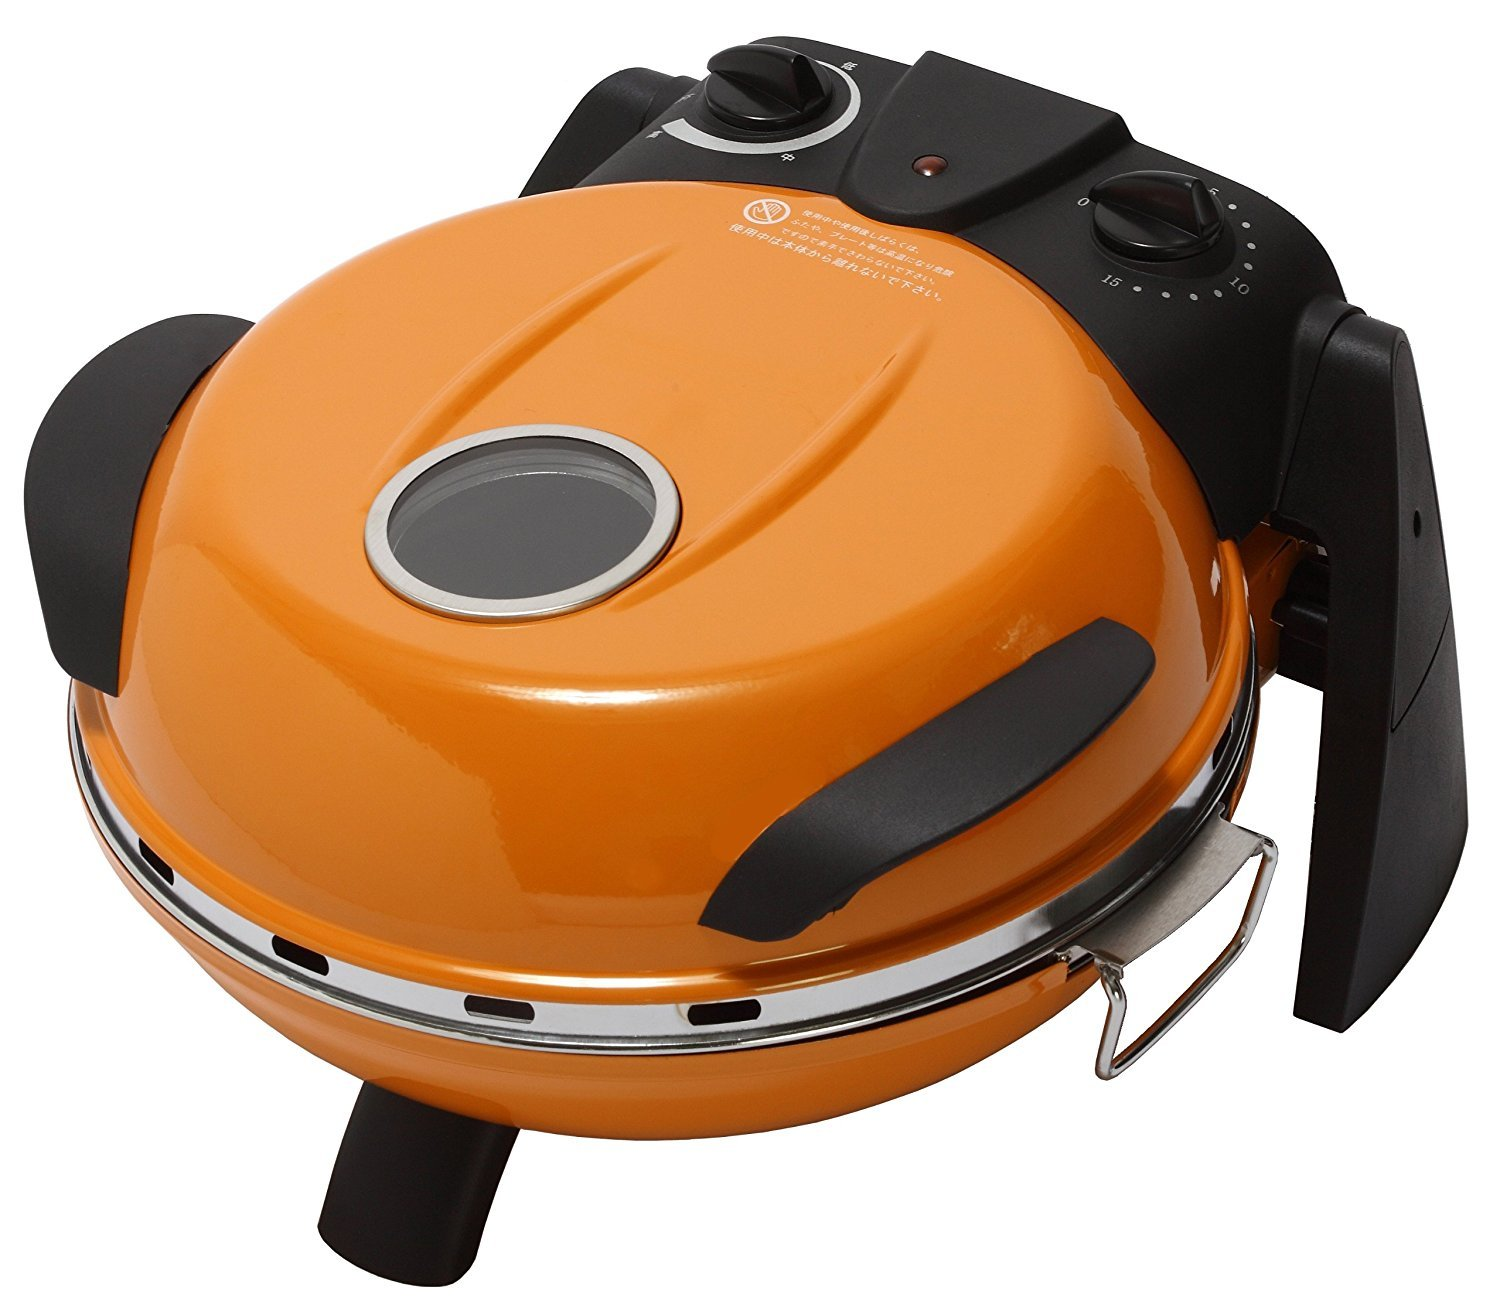 FUKAI Rotary Pizza Roaster Timer Oven Cookware FPM-160